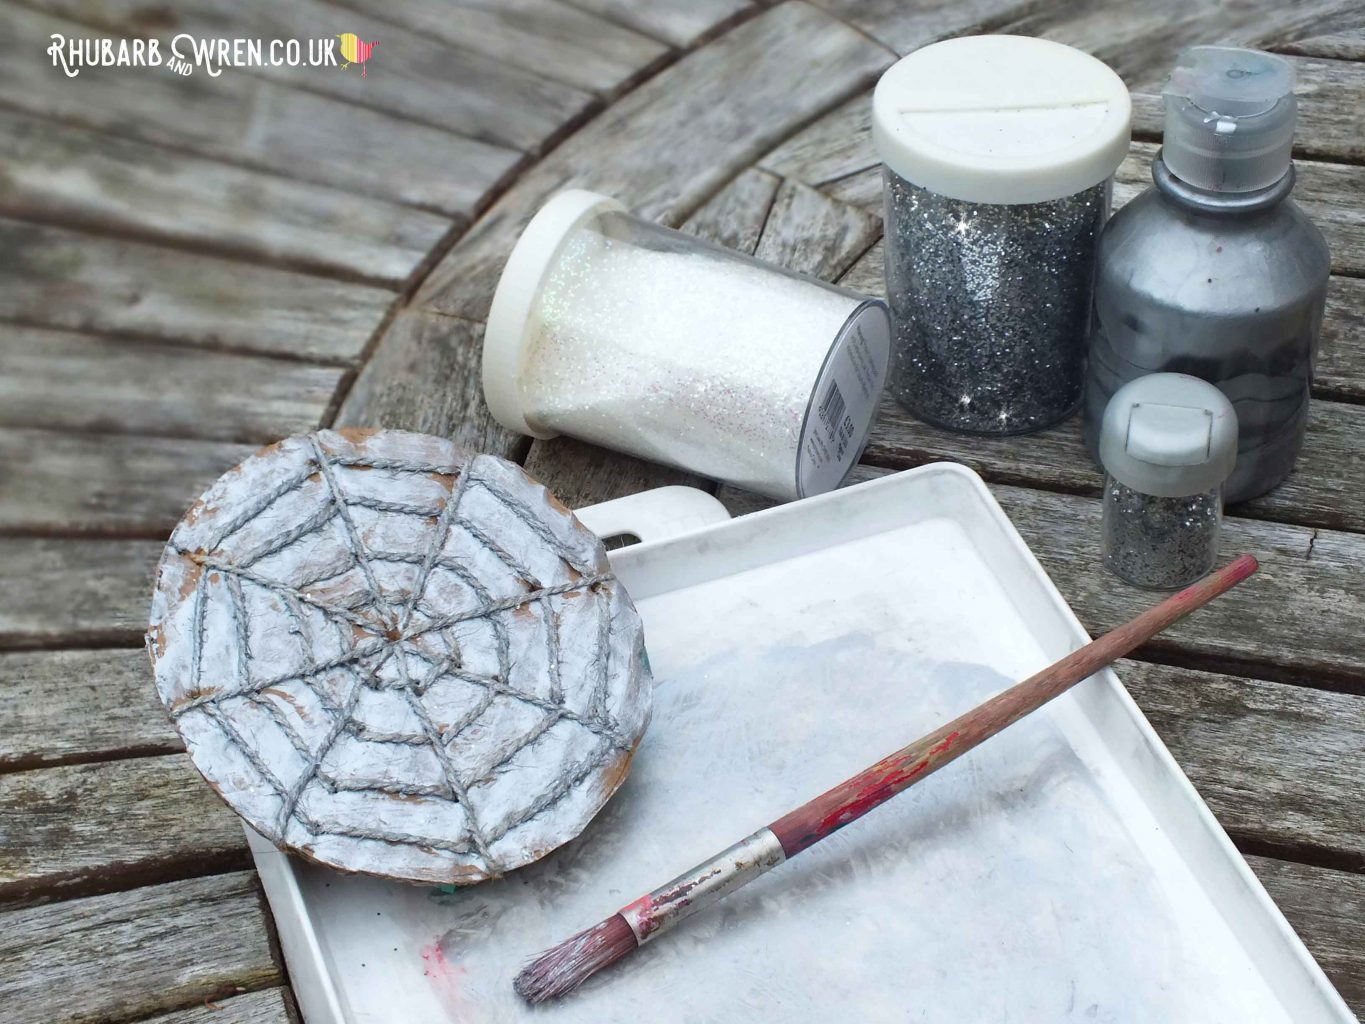 Spiderweb stamper covered in silver paint, with jars of glitter next to it.